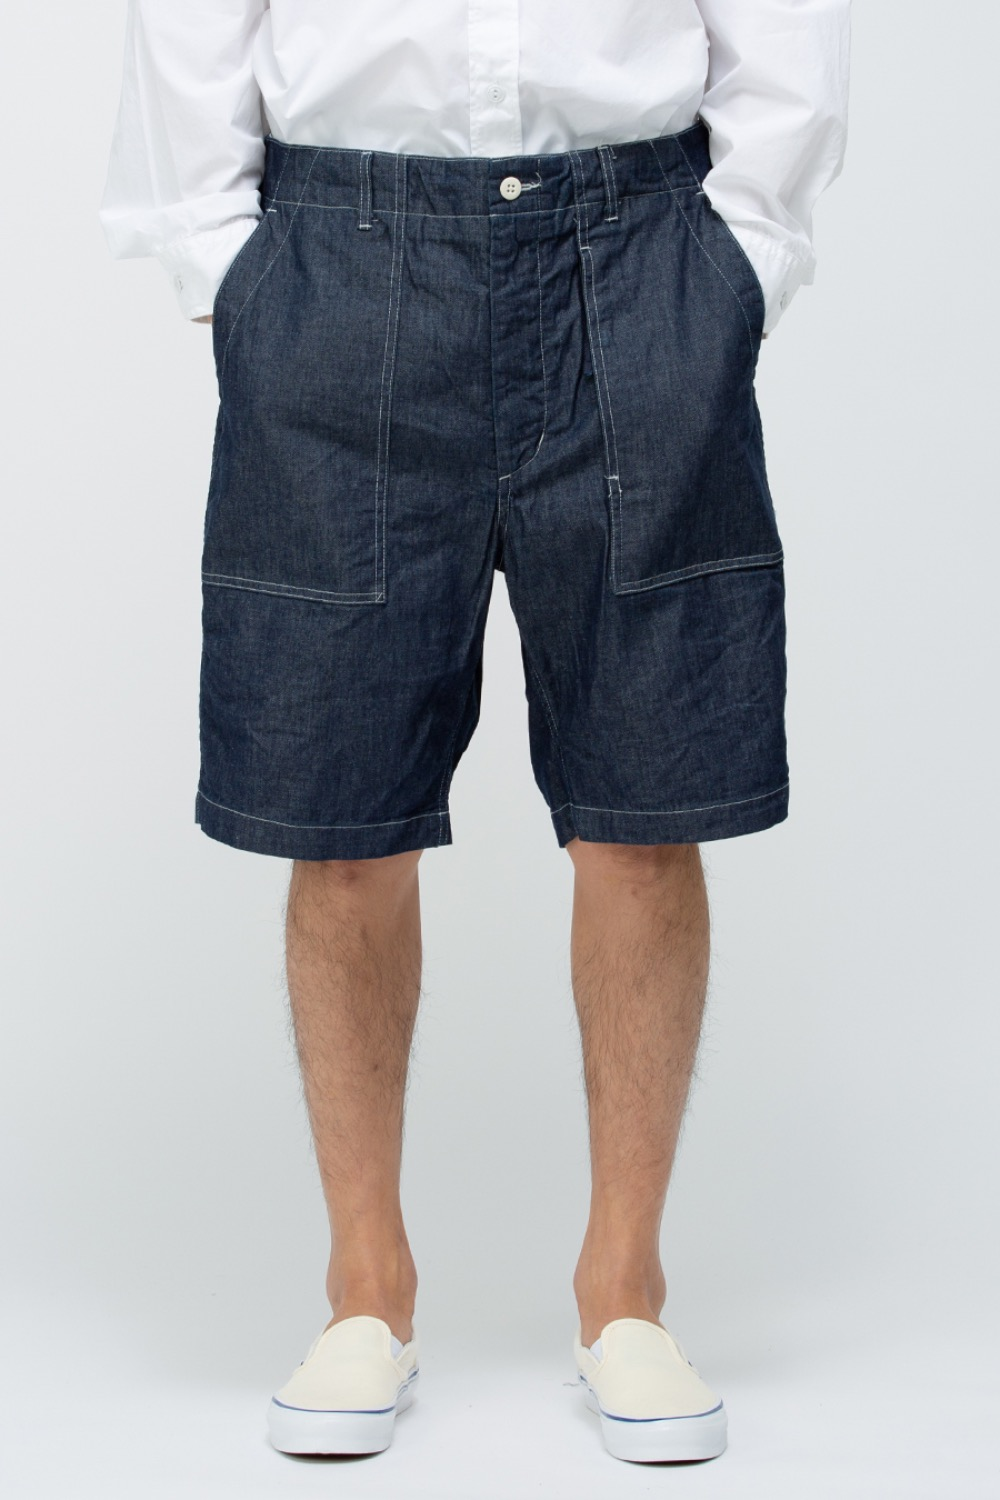 FATIGUE SHORT INDIGO 8oz CONE DENIM